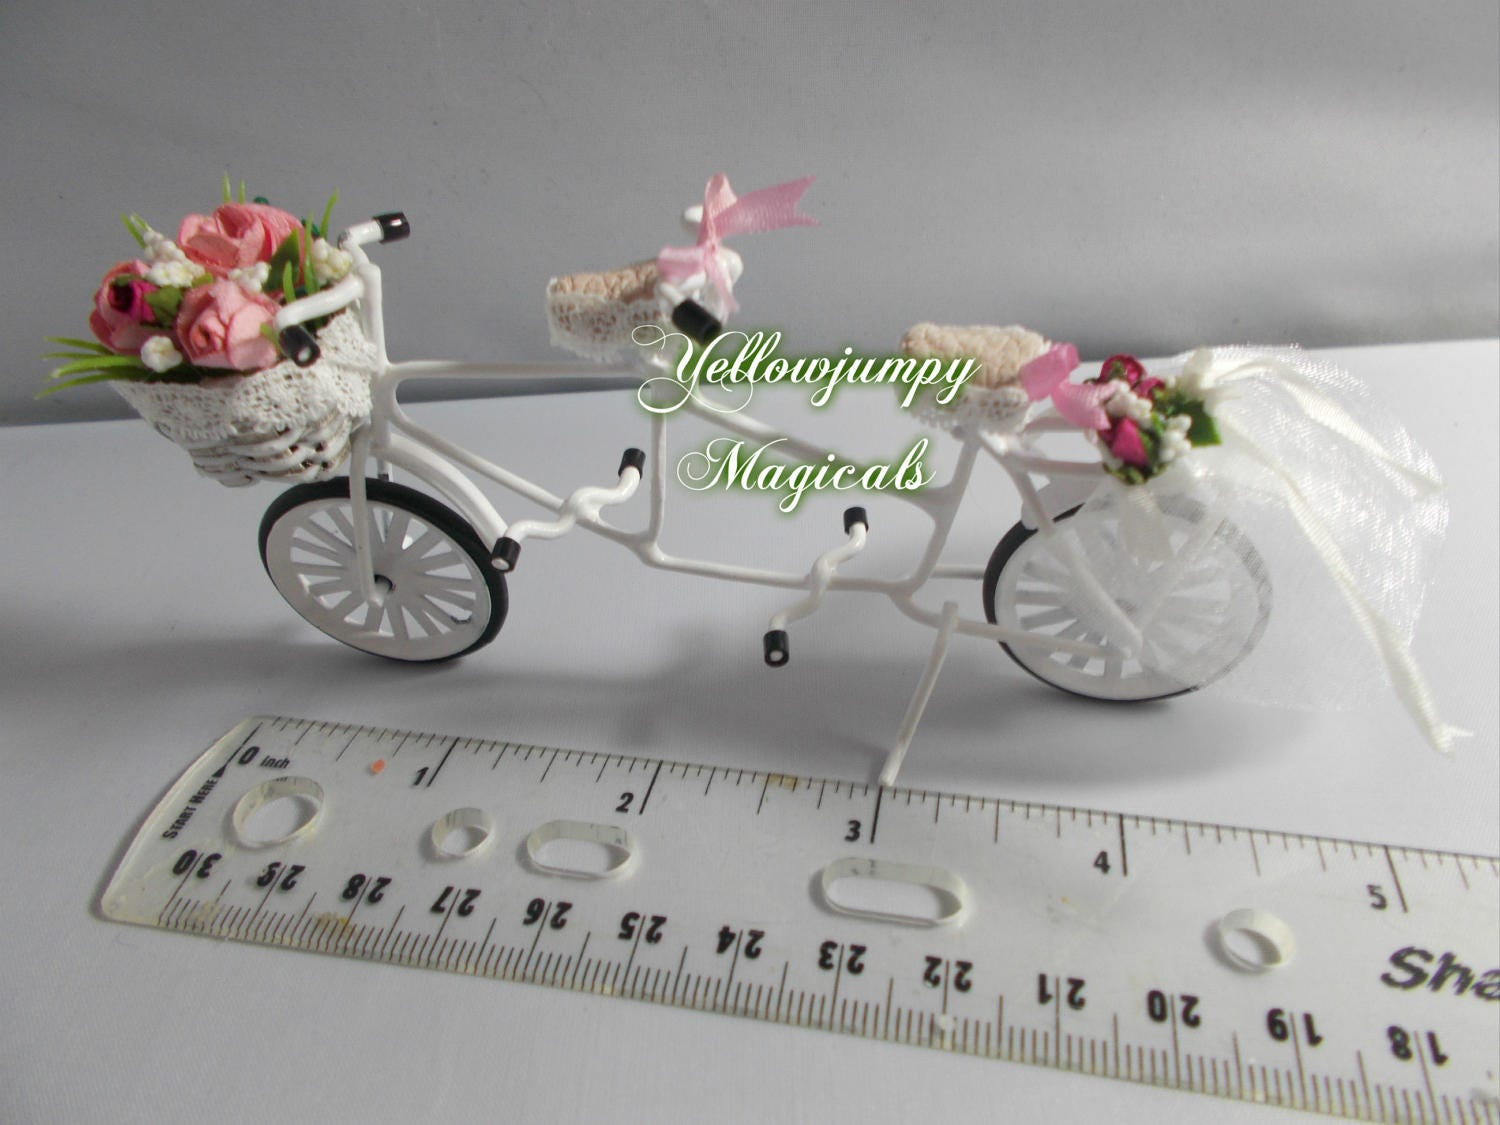 112th or 124th miniature Tandem suitable for a wedding cake topper or dollhouse.Hurrah New stock ready to be made 23 days waiting.